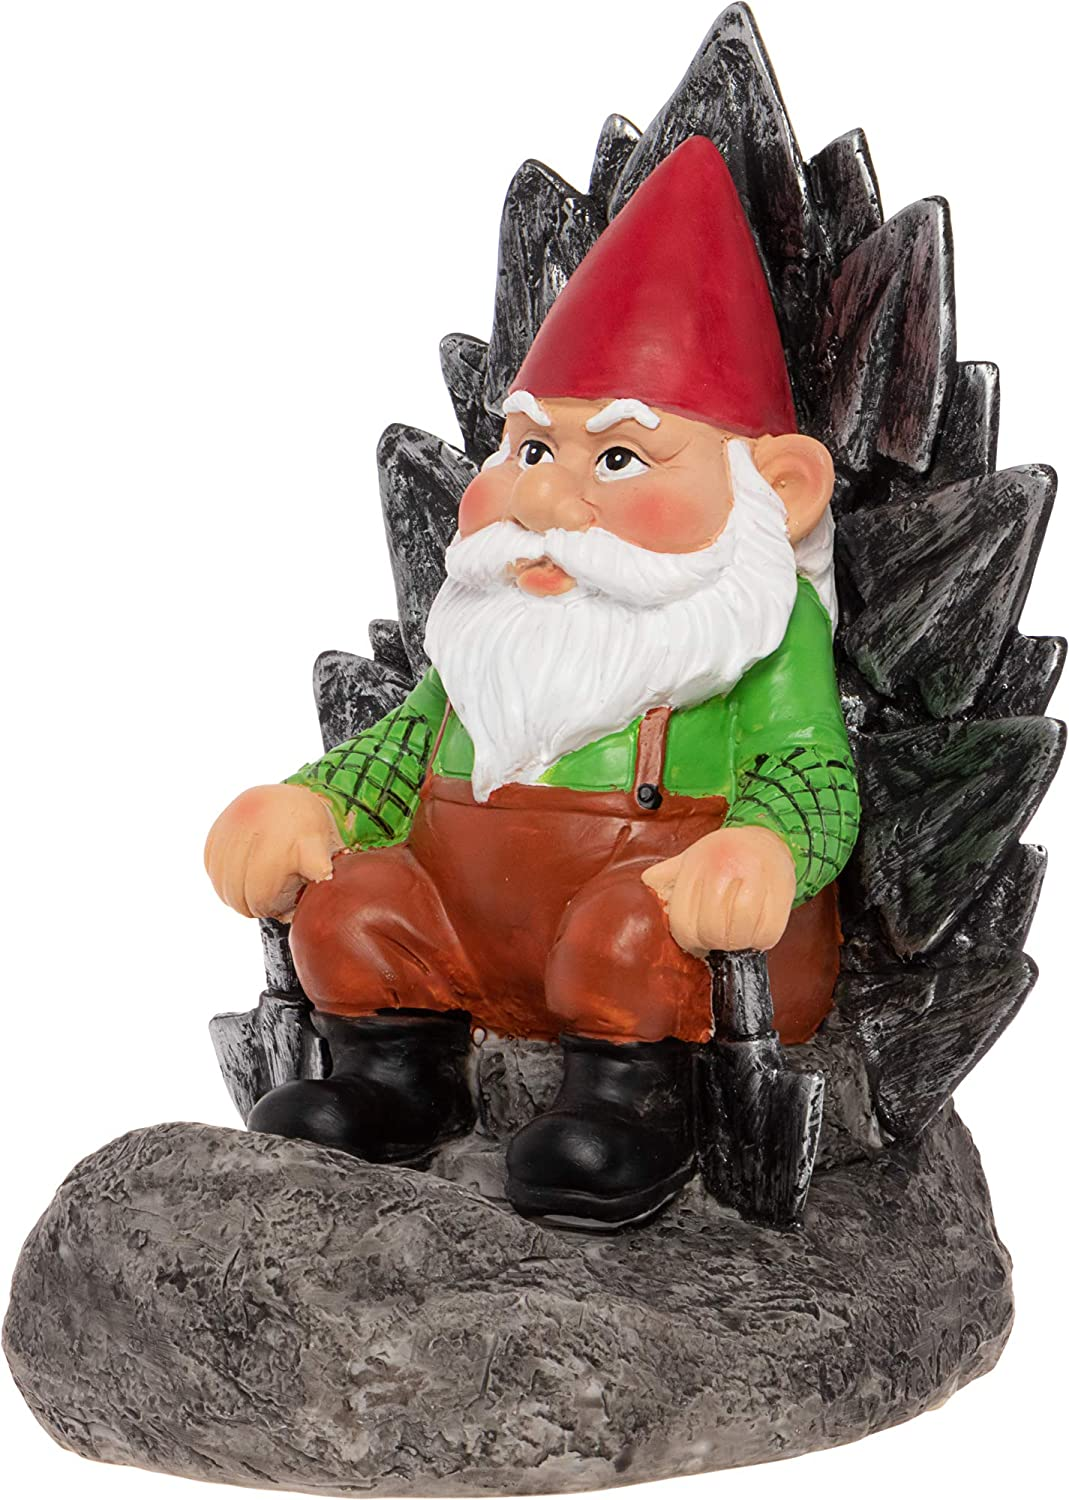 GreenLighting Solar Powered Gnome on a Throne Garden Gnome - Novelty Light Up Lawn Ornament Figurine